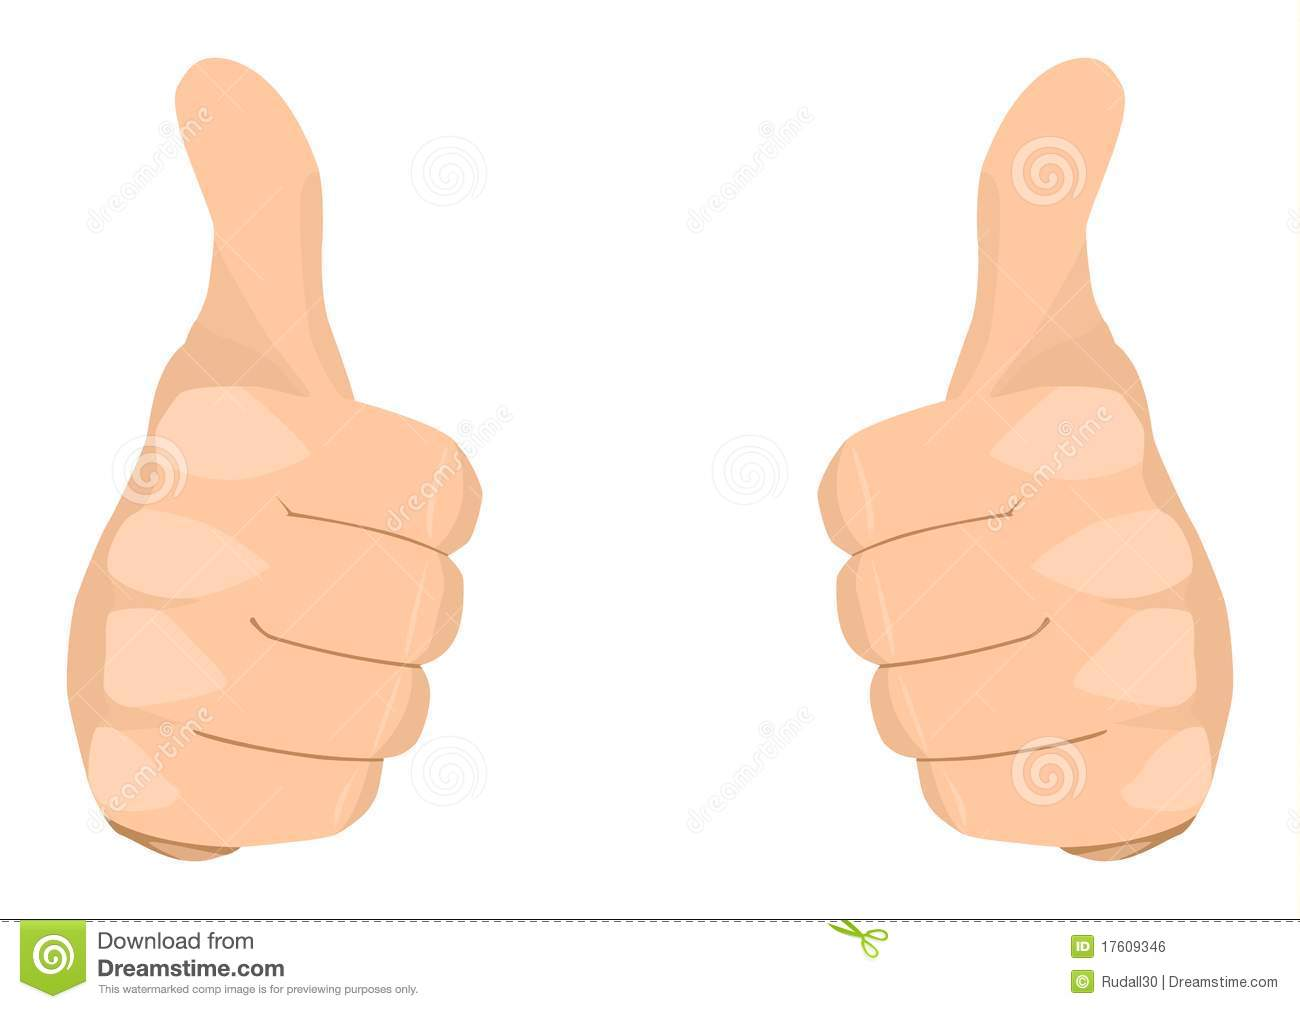 2 thumbs up clipart svg free stock 2 thumbs up clipart - ClipartFest svg free stock